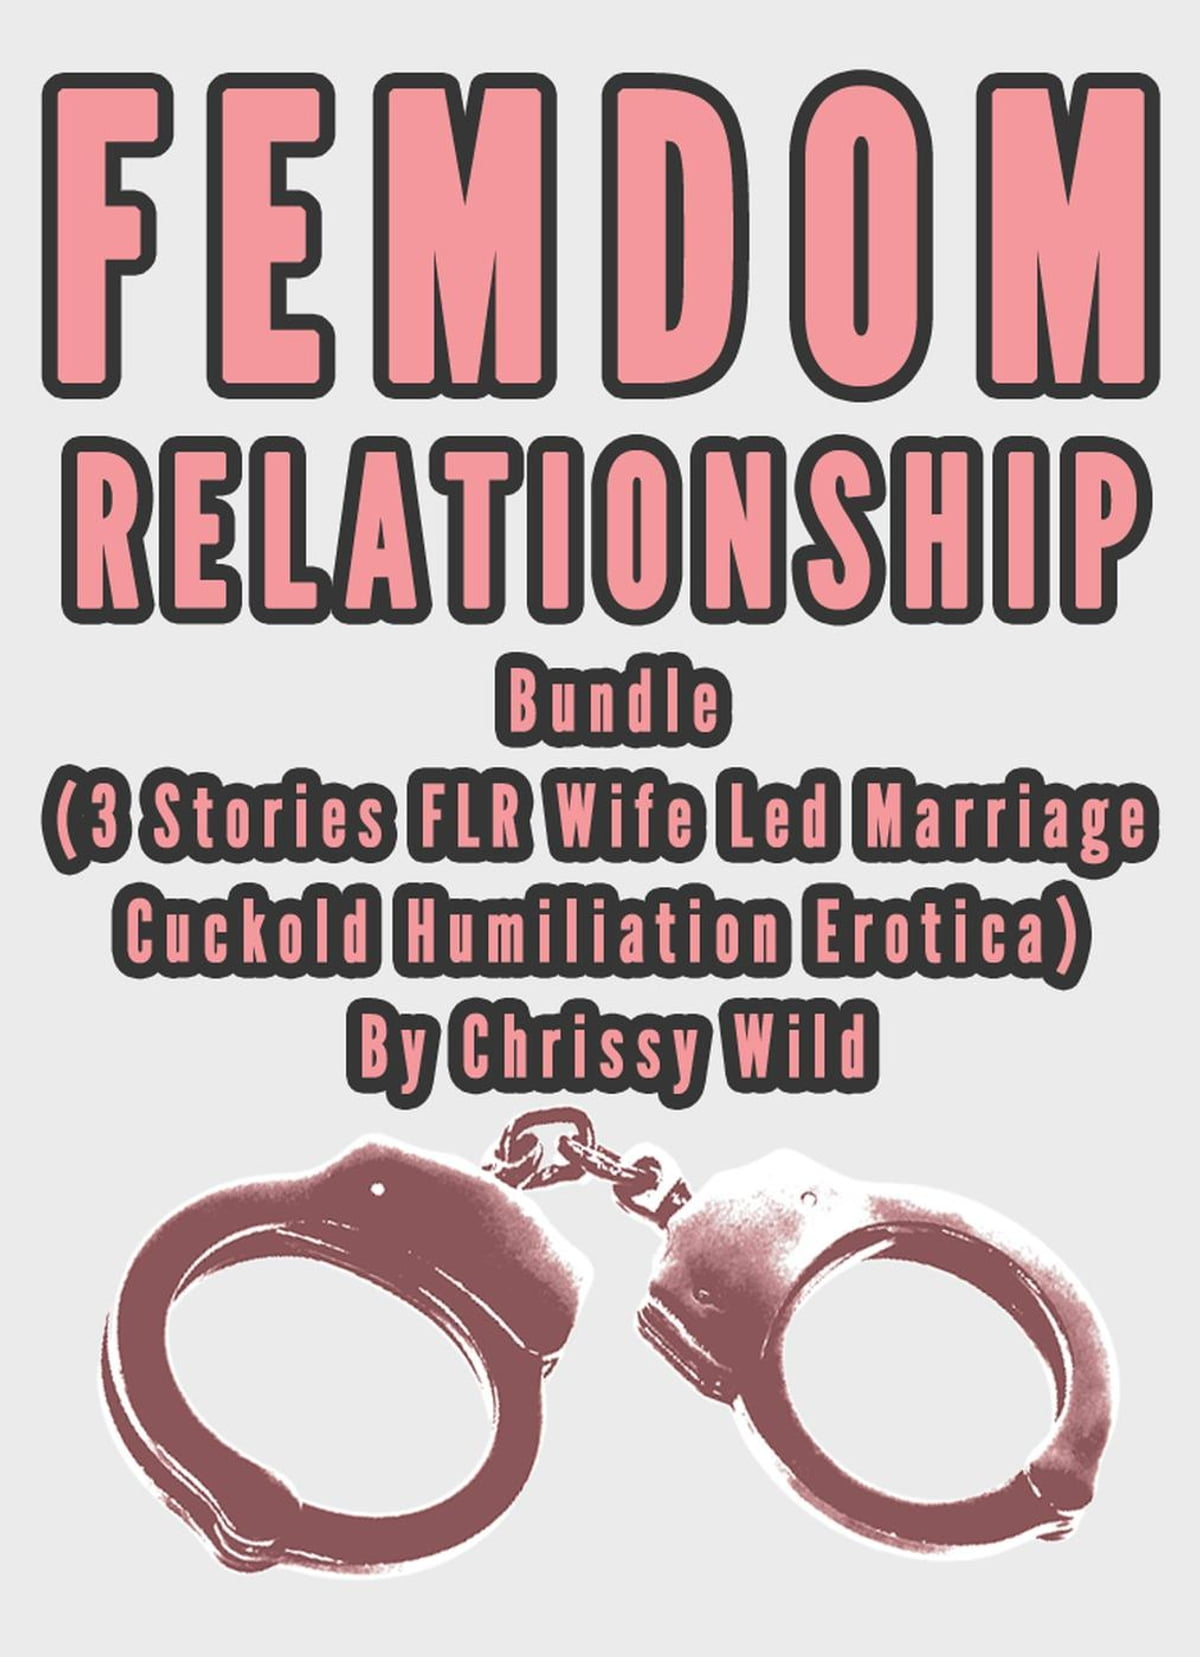 Femdom Relationship Bundle (3 Stories FLR Wife Led Marriage Cuckold  Humiliation Erotica) ebook by